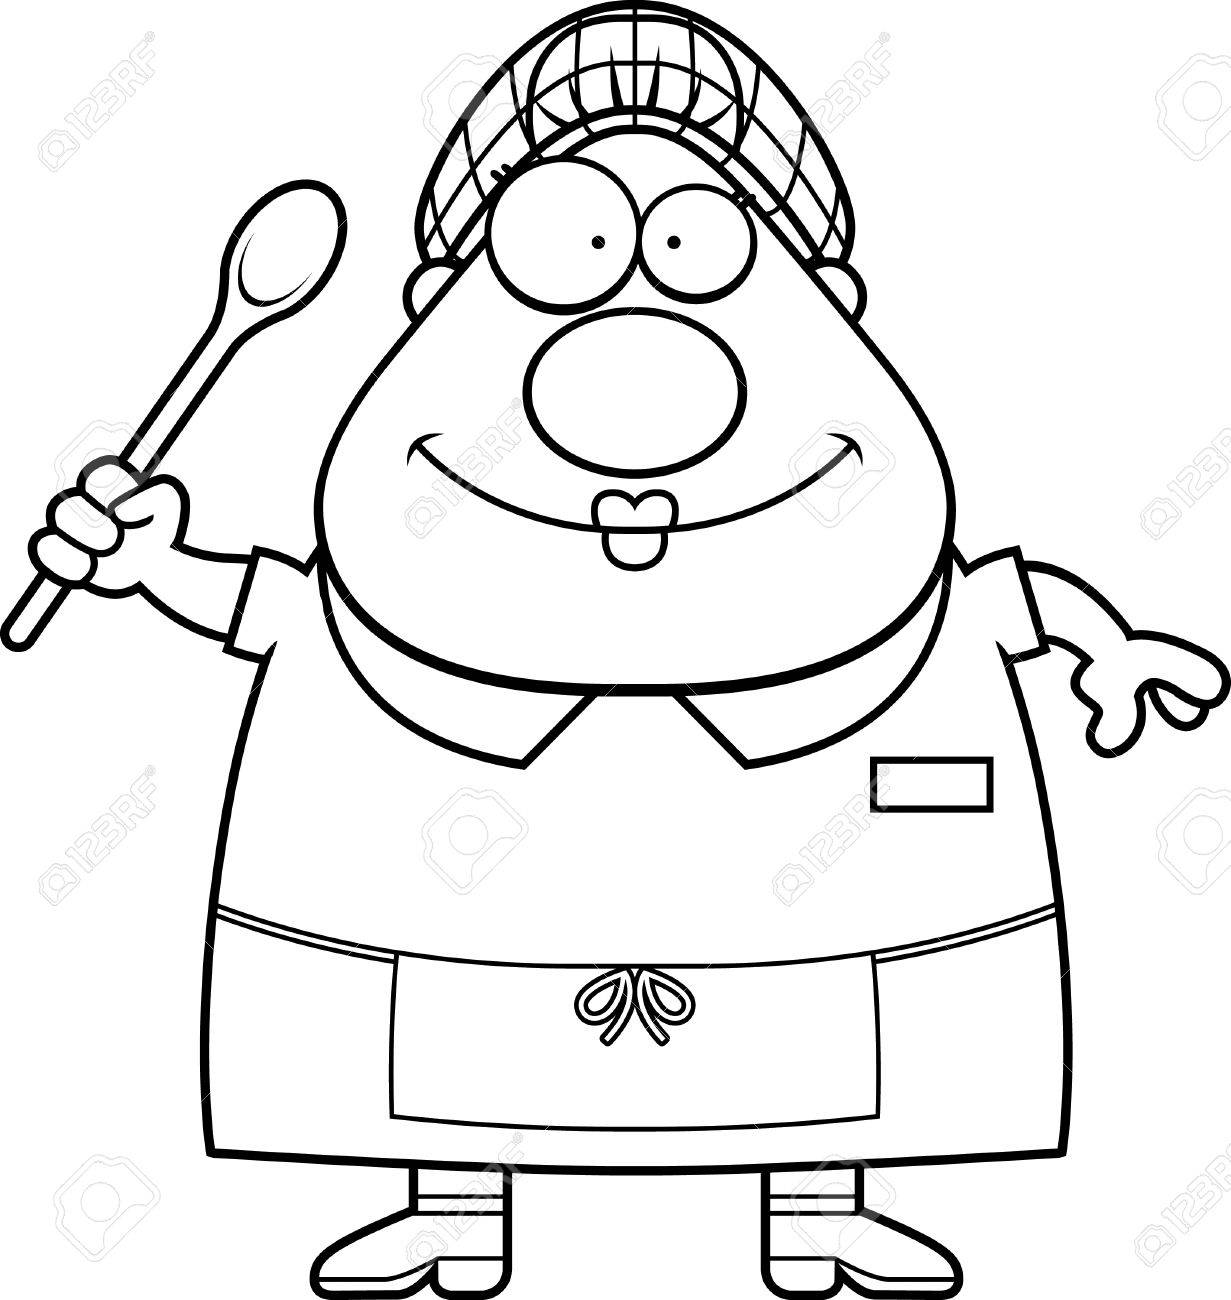 A cartoon illustration of a lunch lady looking happy..